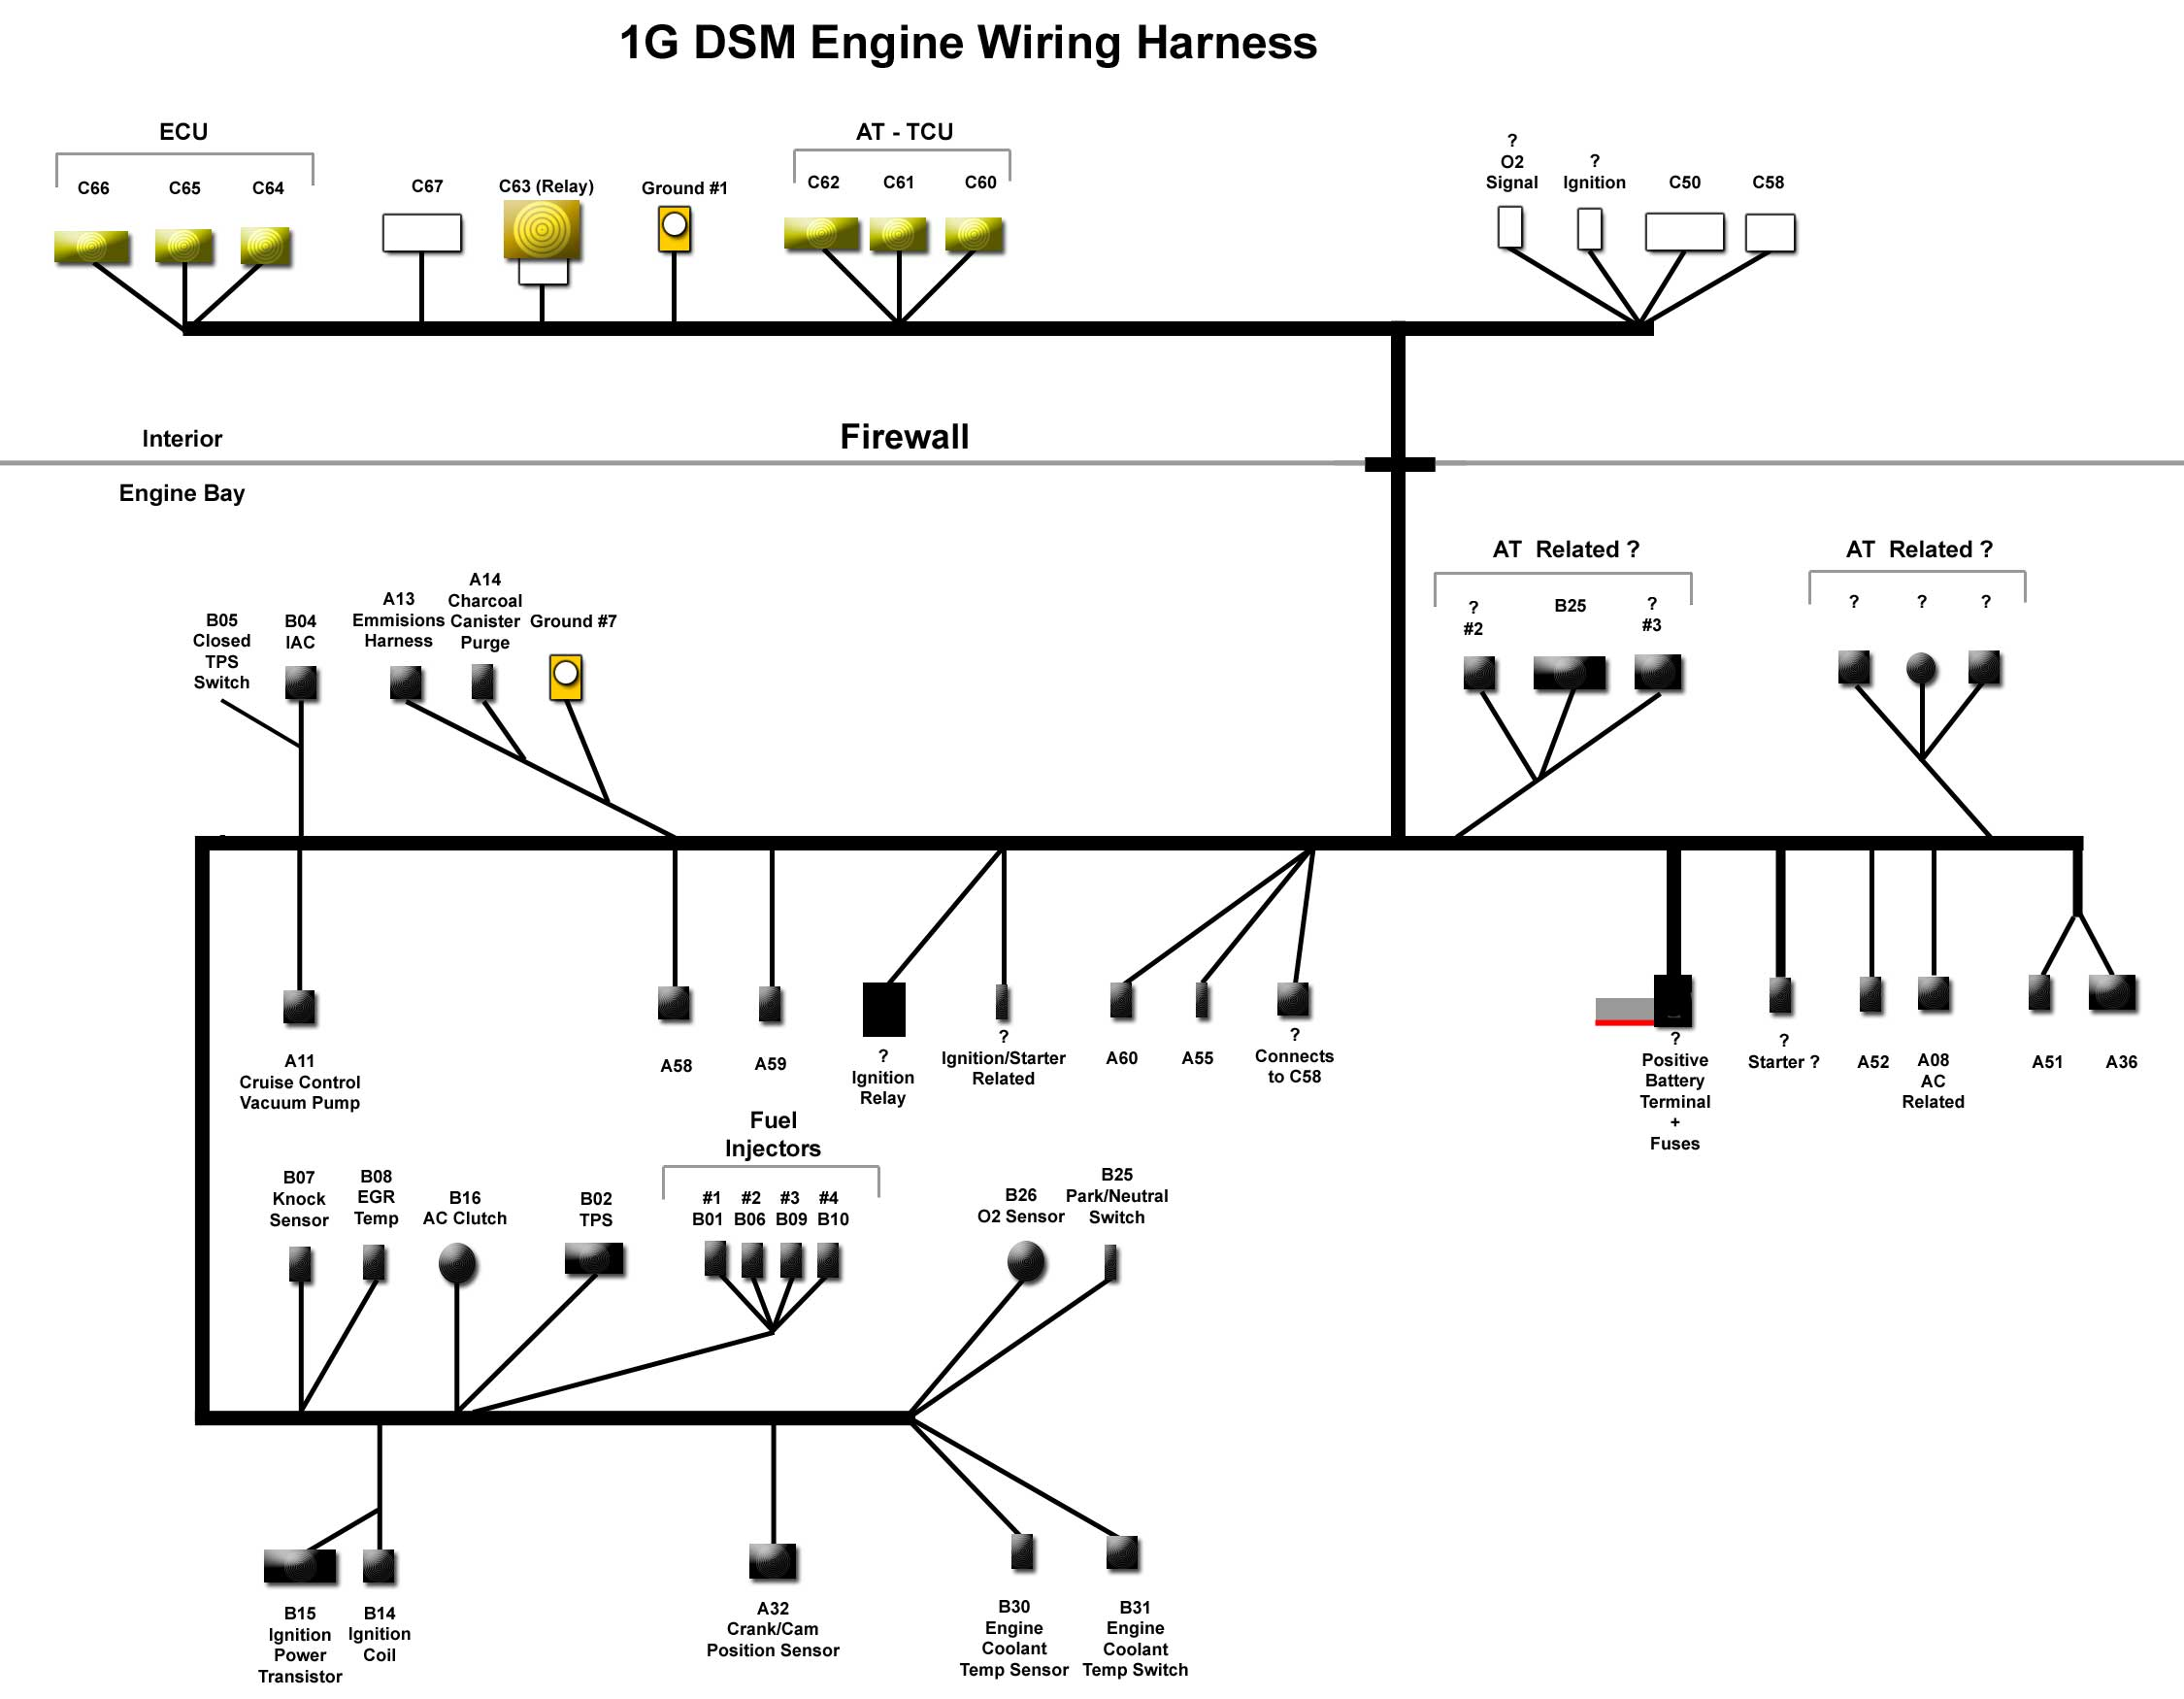 1G DSM EngineHarness wiring loom diagram 1 2wire loom \u2022 wiring diagrams j squared co ford 2.3 turbo wiring harness at virtualis.co